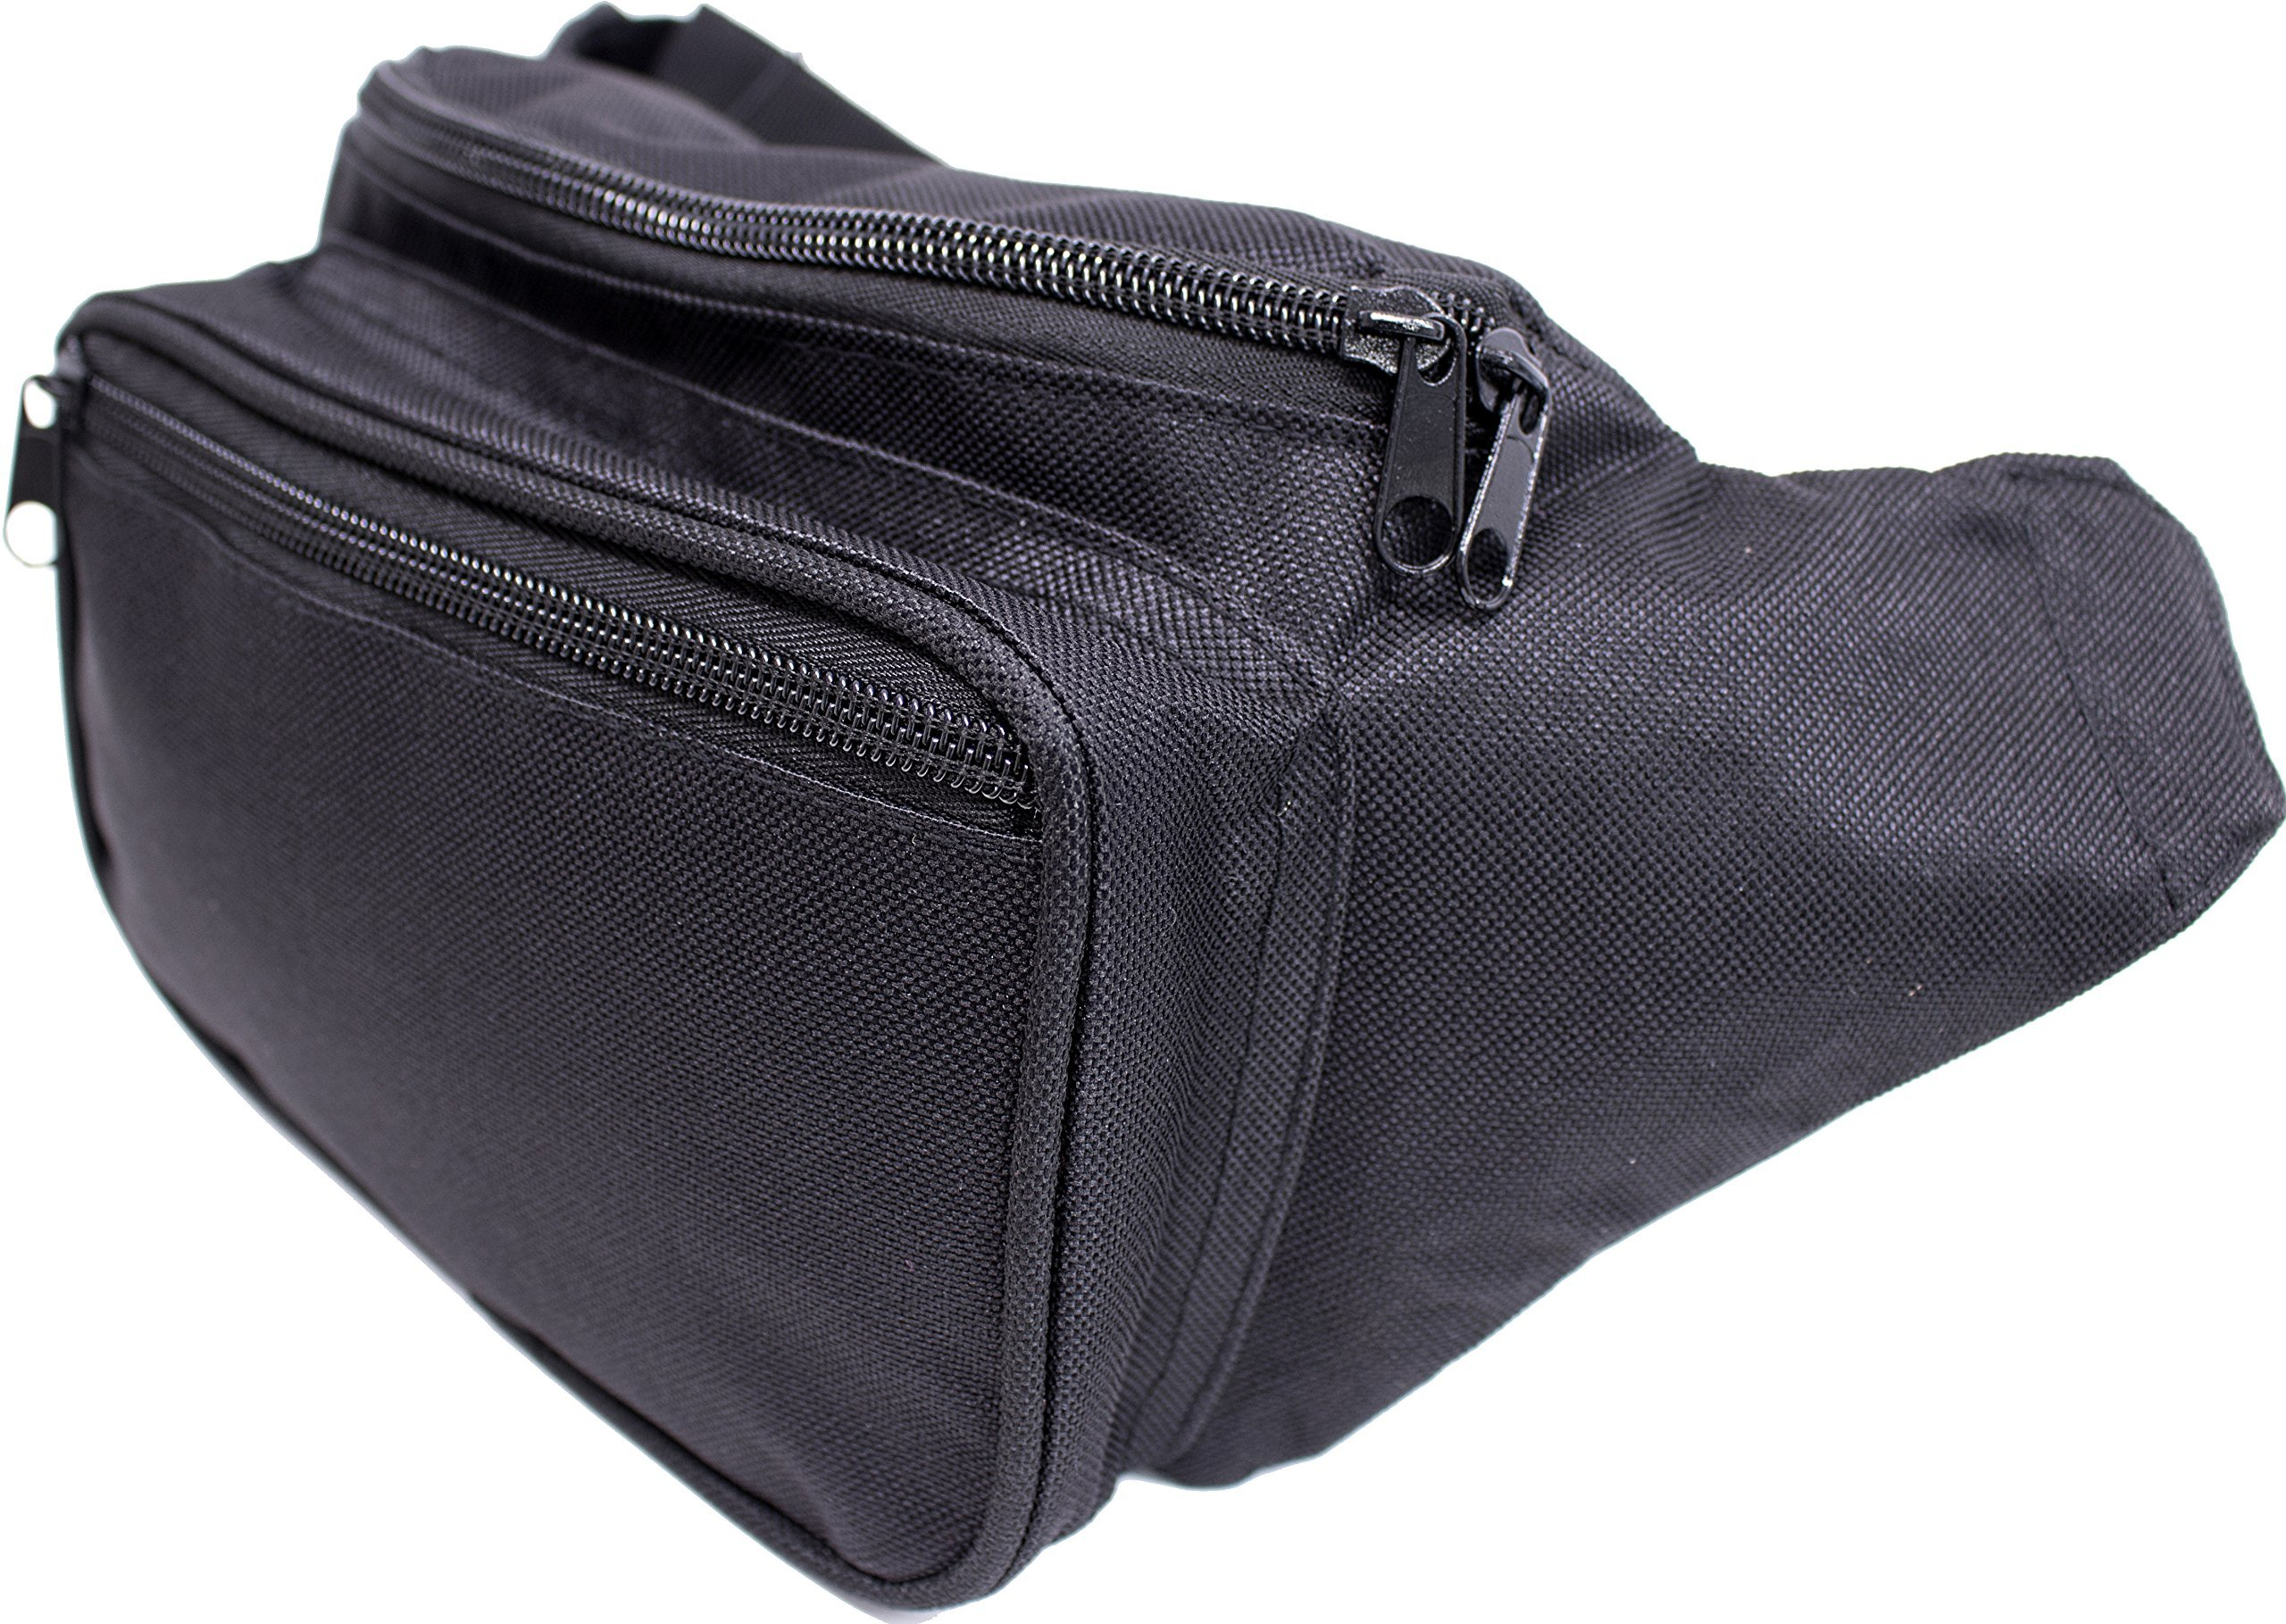 SoJourner Bags Fanny Pack - Classic Solid Bright Colors (Black)